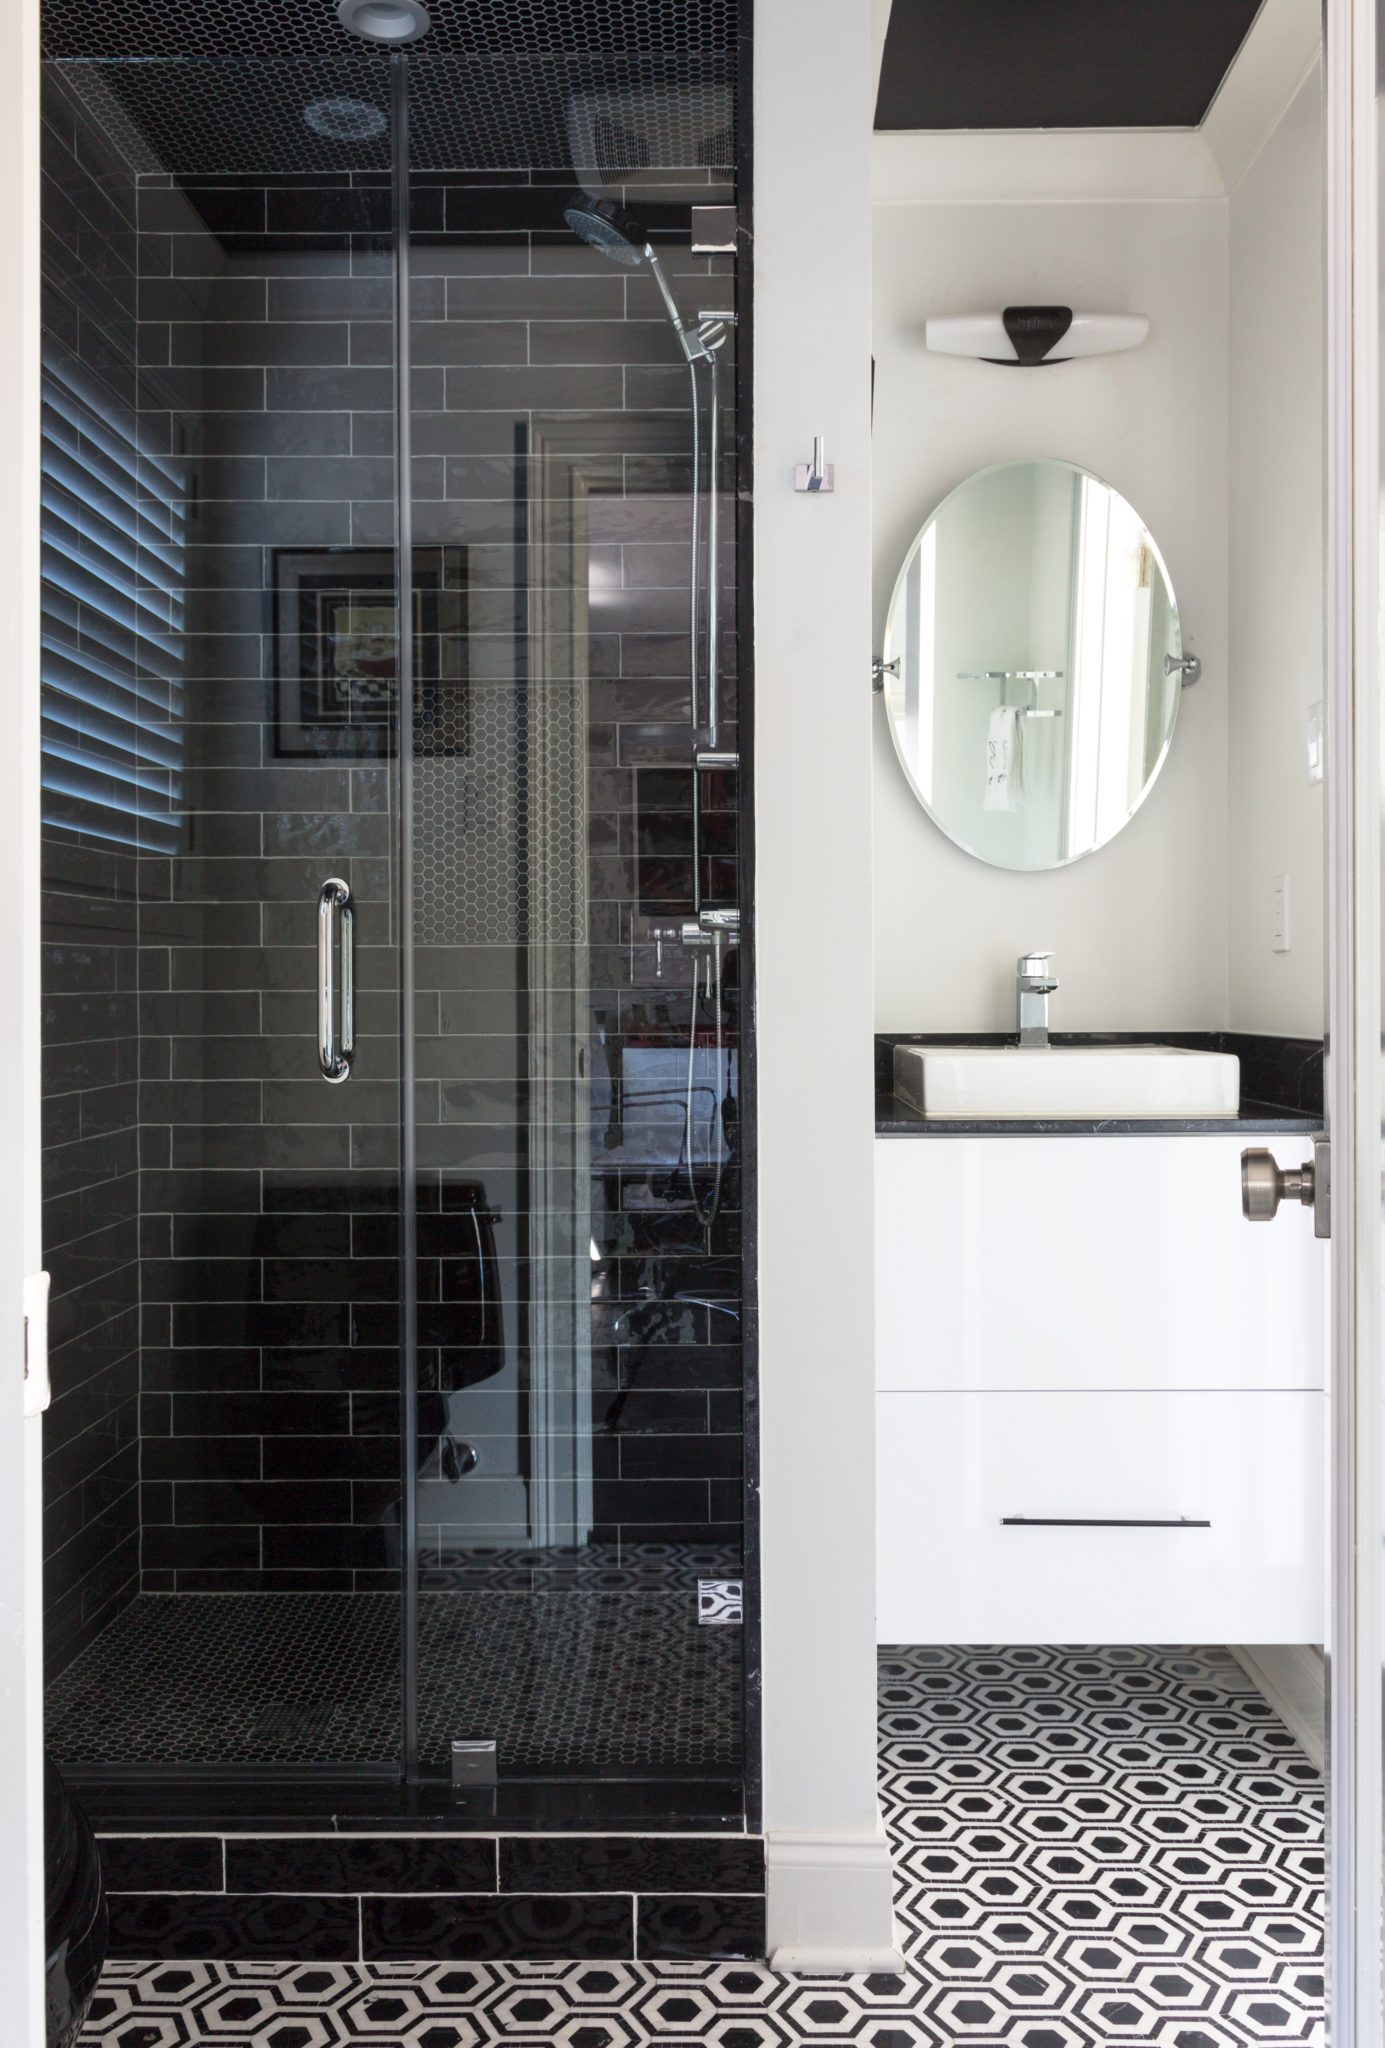 Guest Bathroom with marble flooring and glazed ceramic on shower walls by Eclectic Home